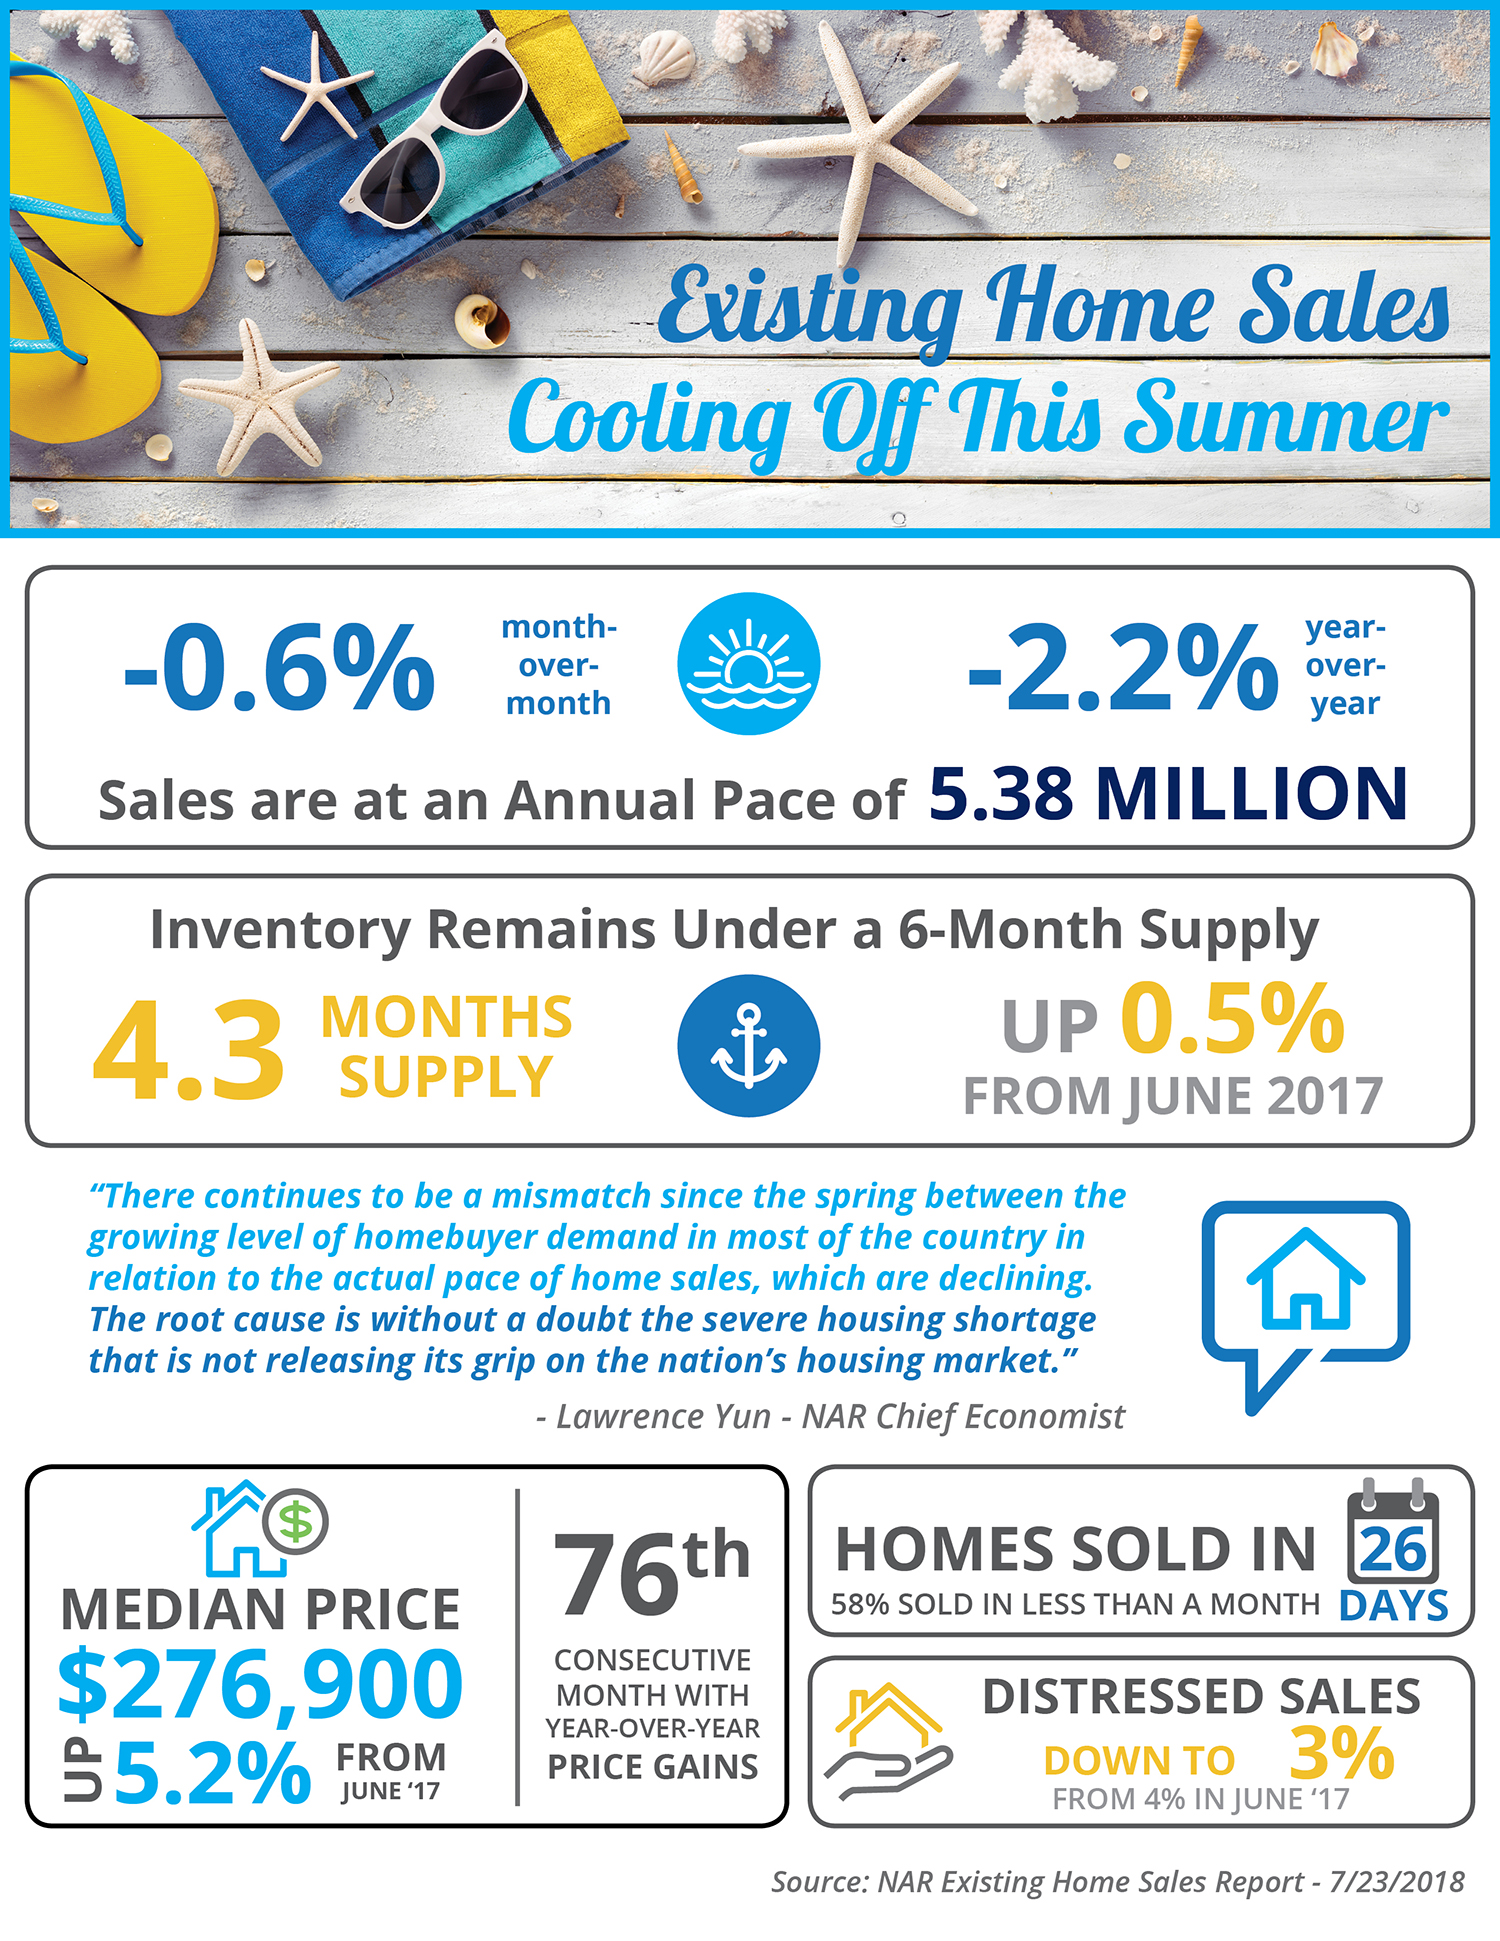 Existing Home Sales Cooling Off This Summer [INFOGRAPHIC] | Bridge Builders